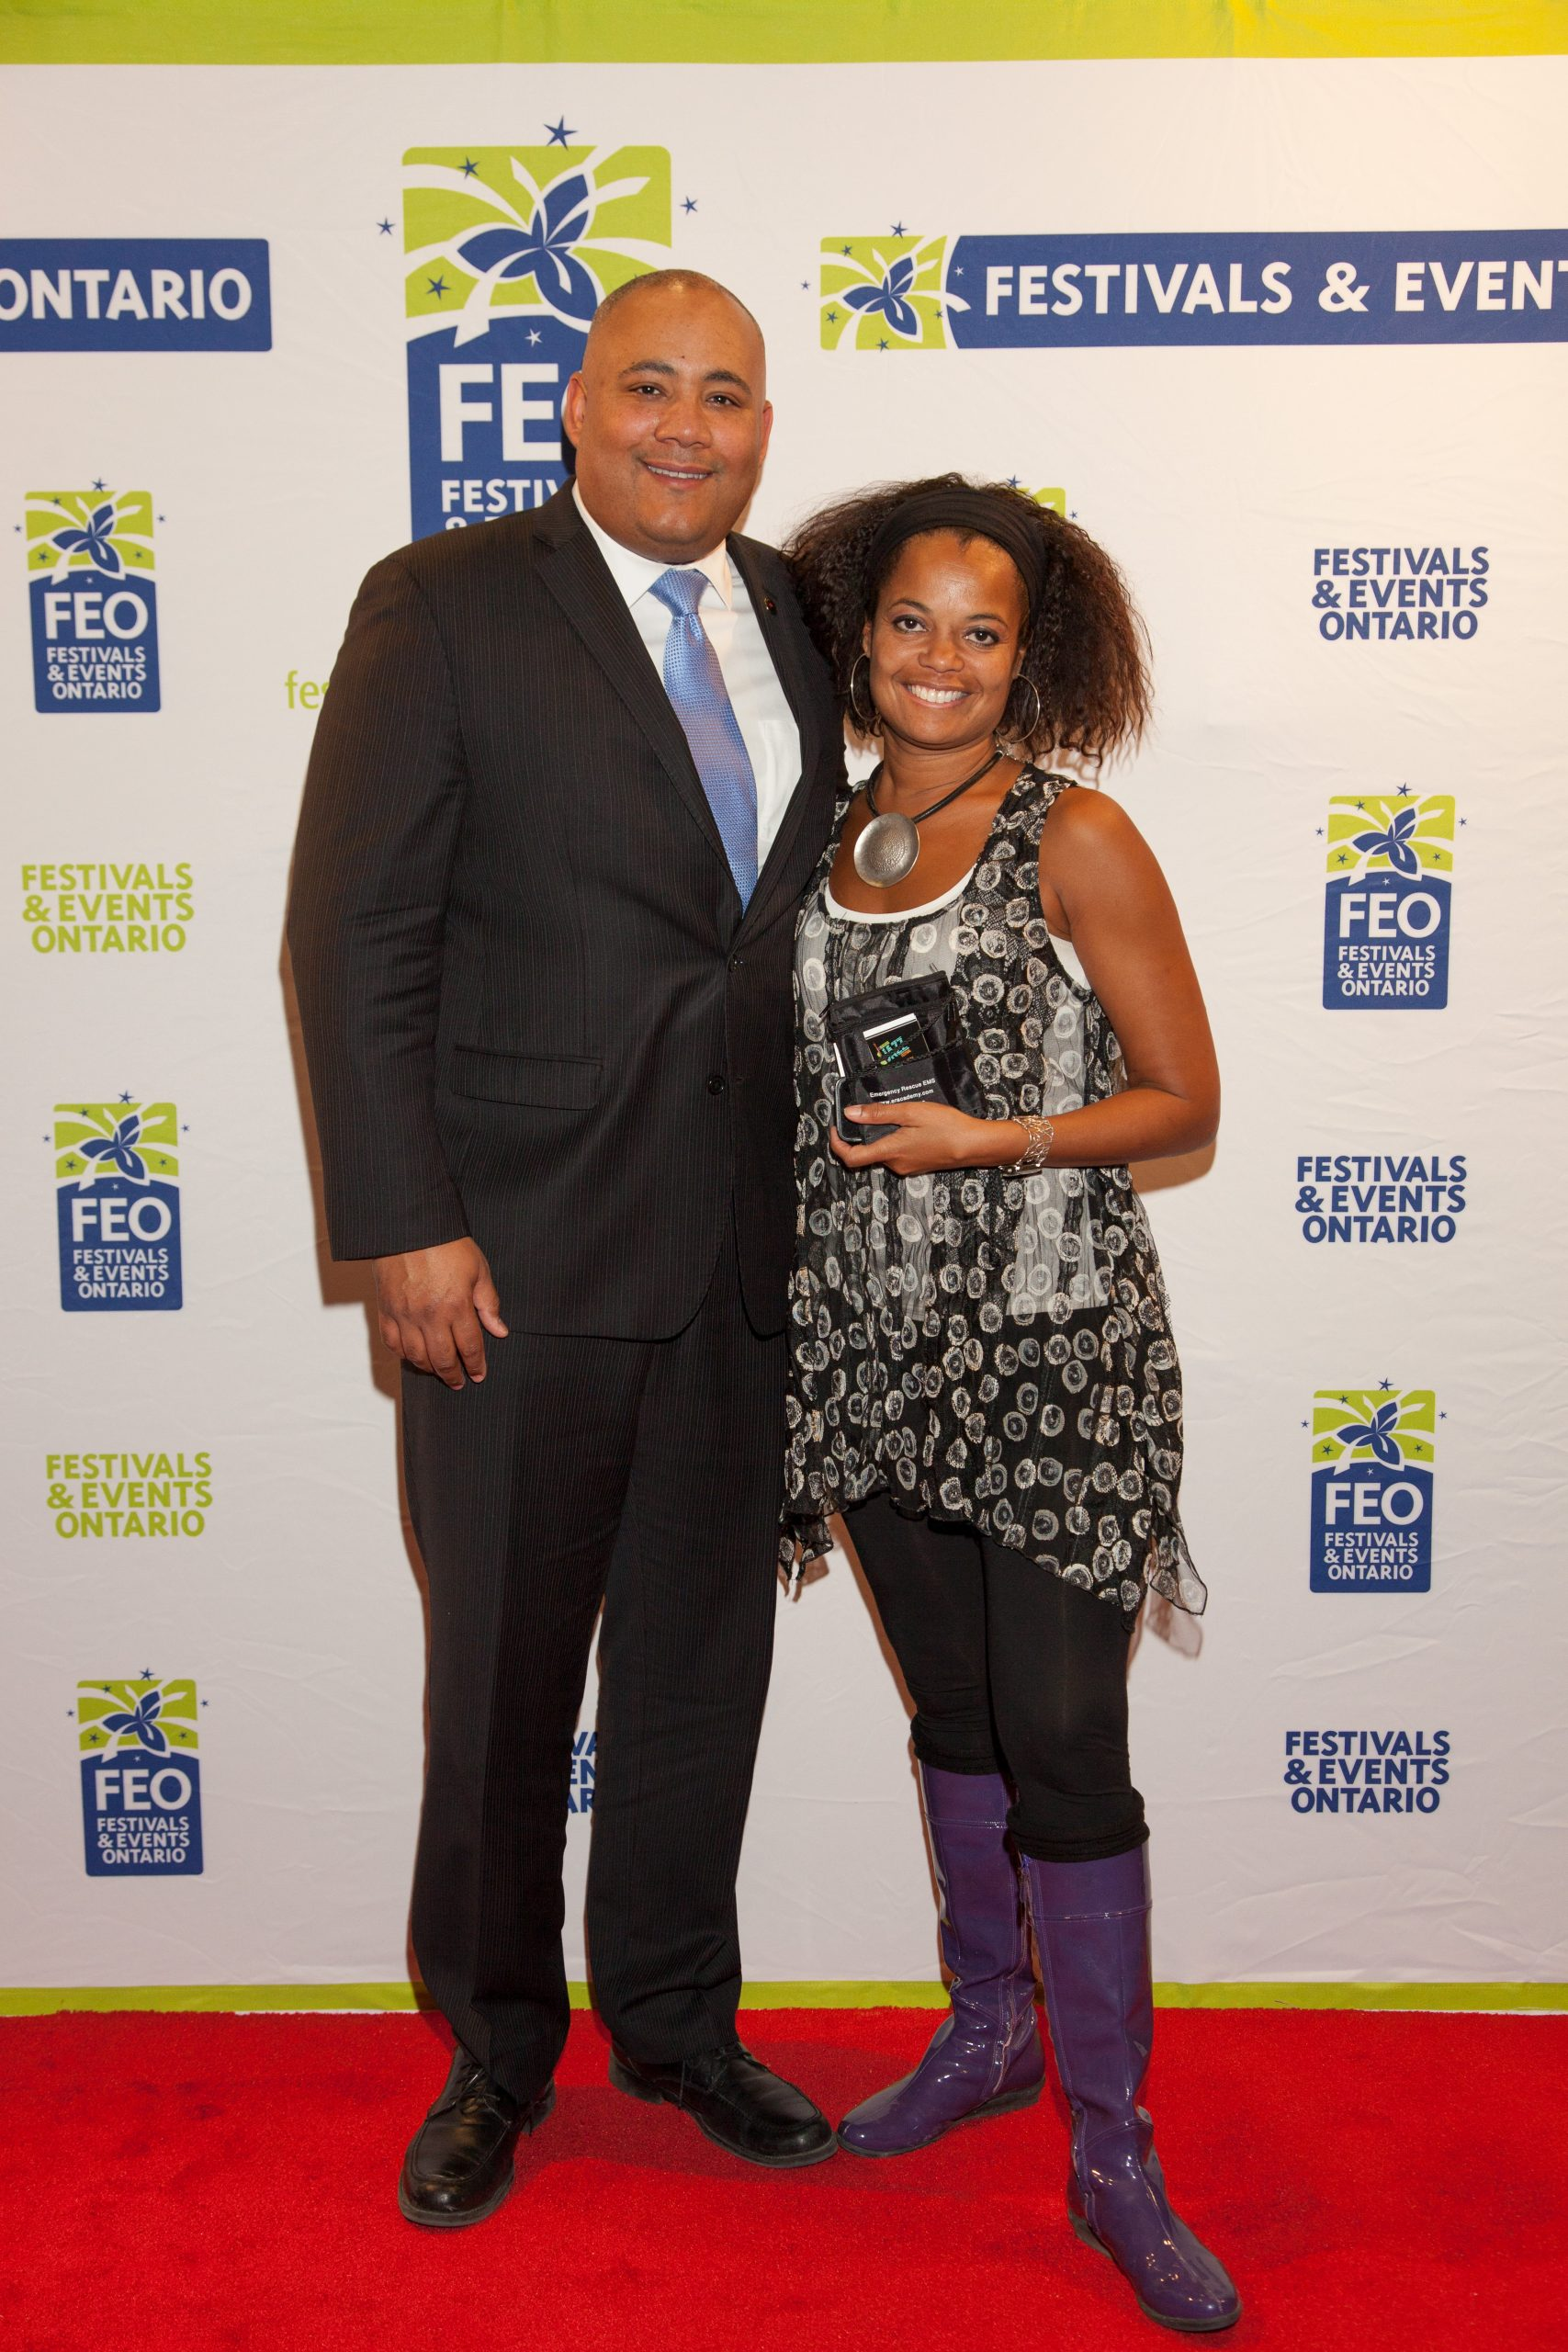 Juliet Dunn and Michael Coteau (Minister of Tourism, Culture, and Sport 2016)